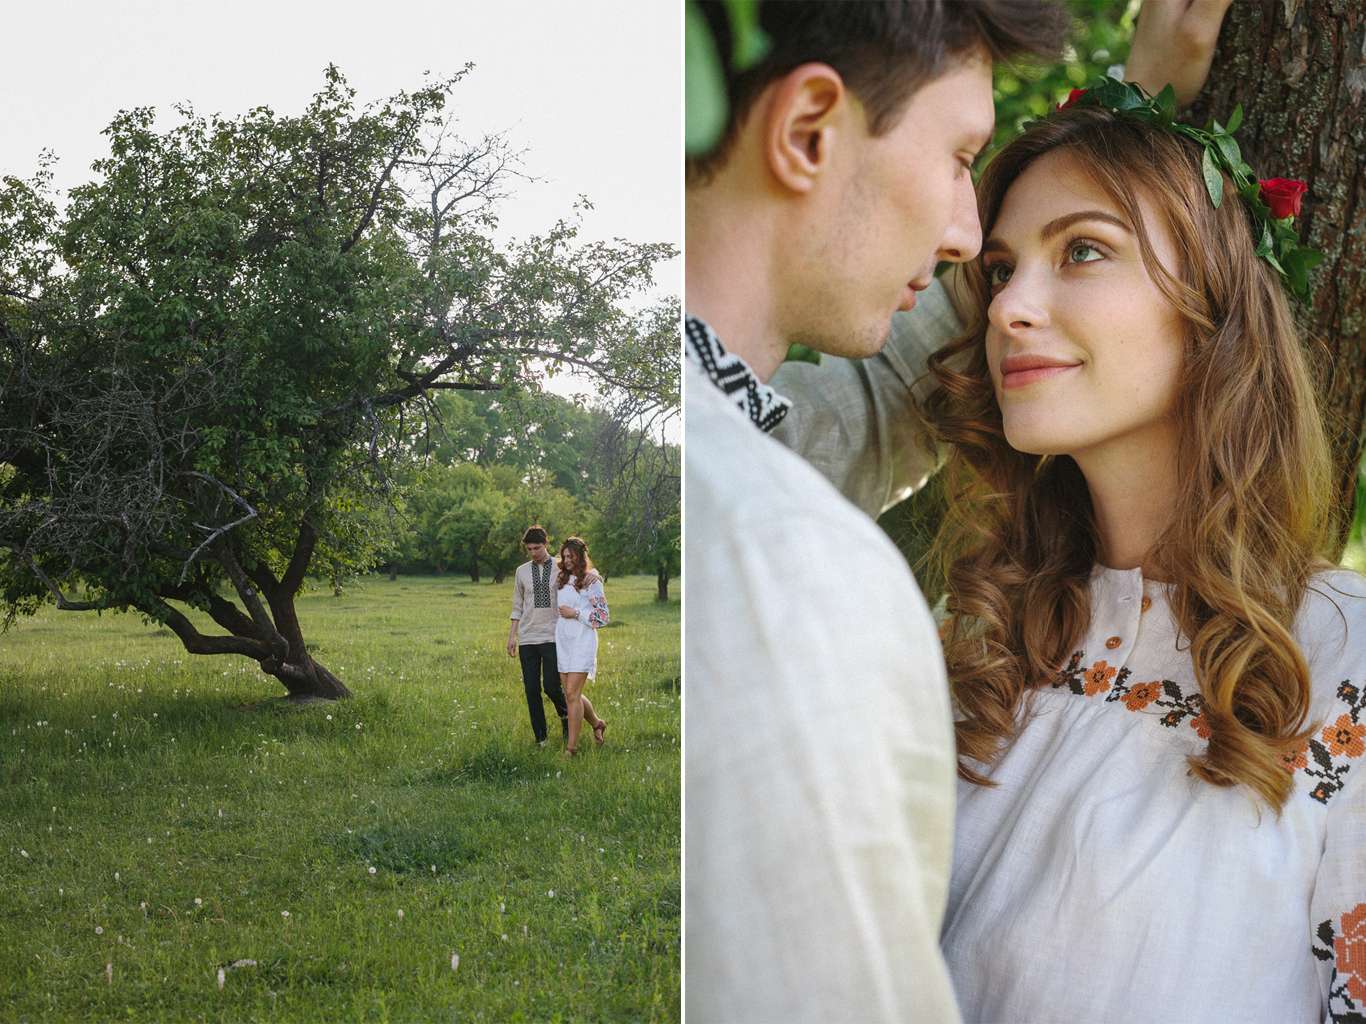 Kupava-Apple-Pie-Weddings-Polina-Illchenko-14